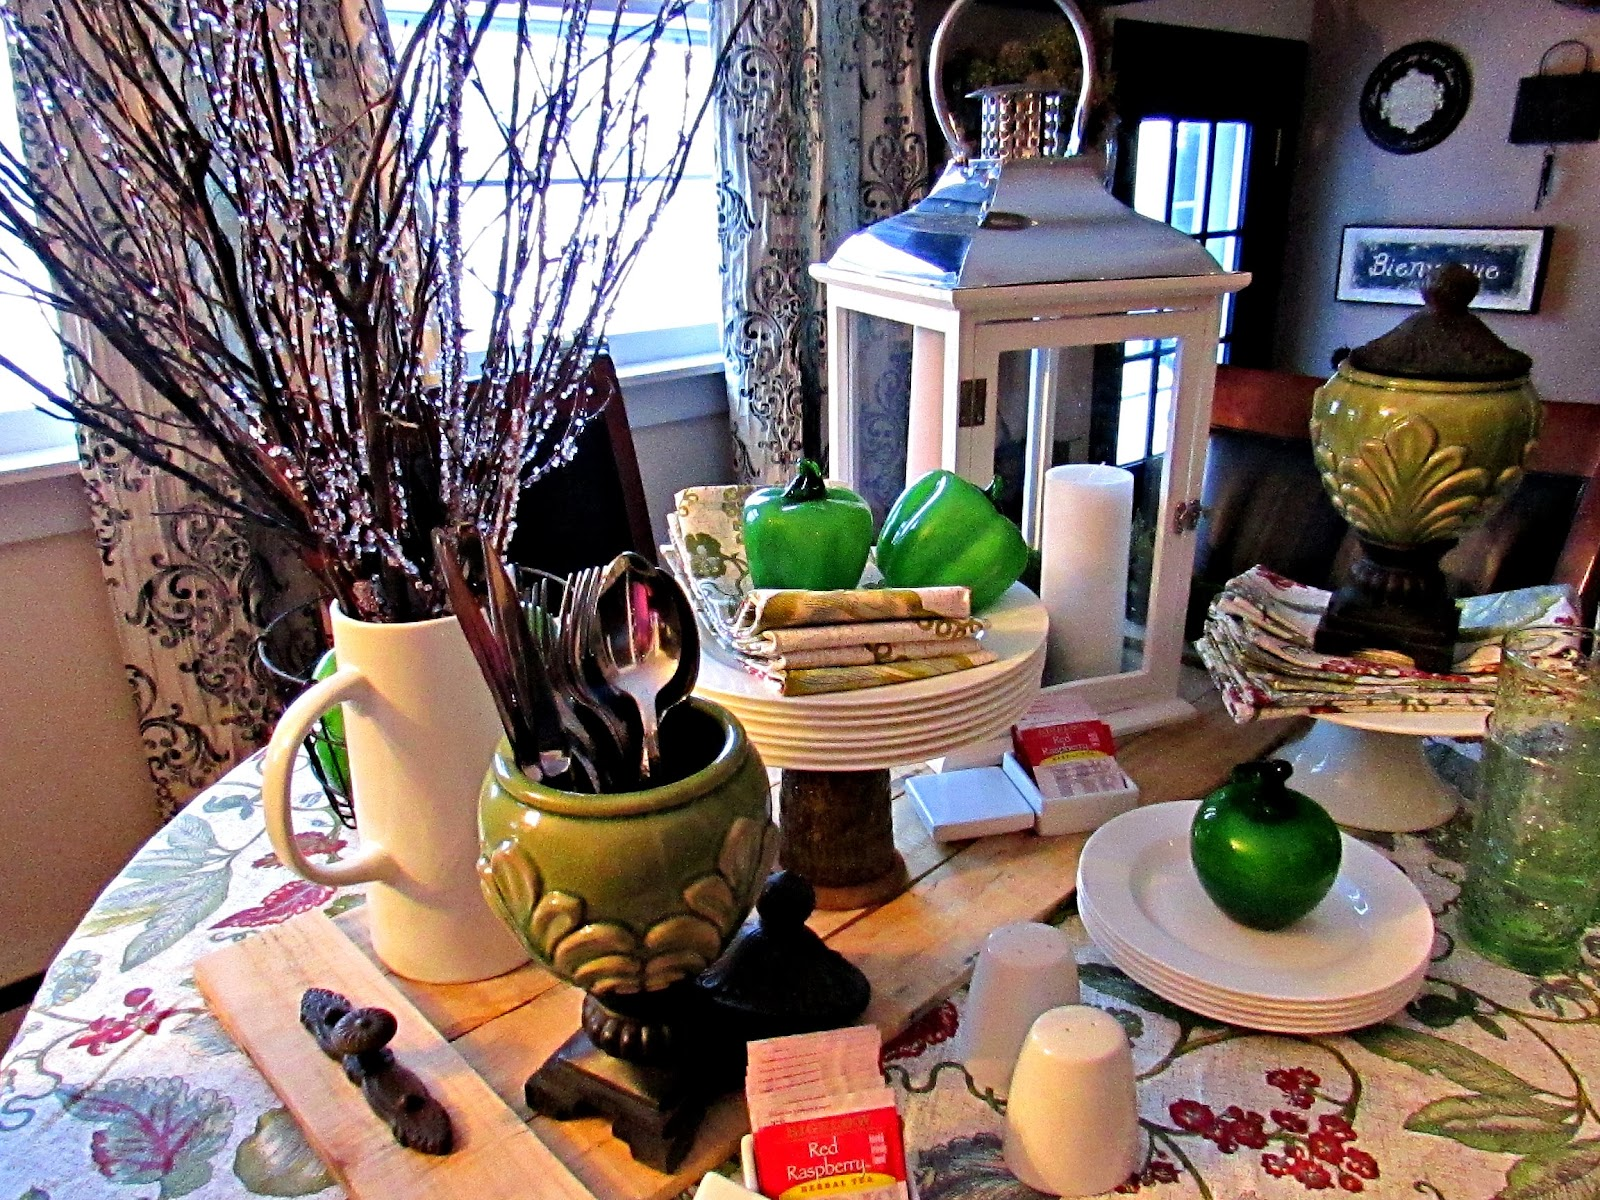 Morning Light ~ Green and White Dishes Tablescape